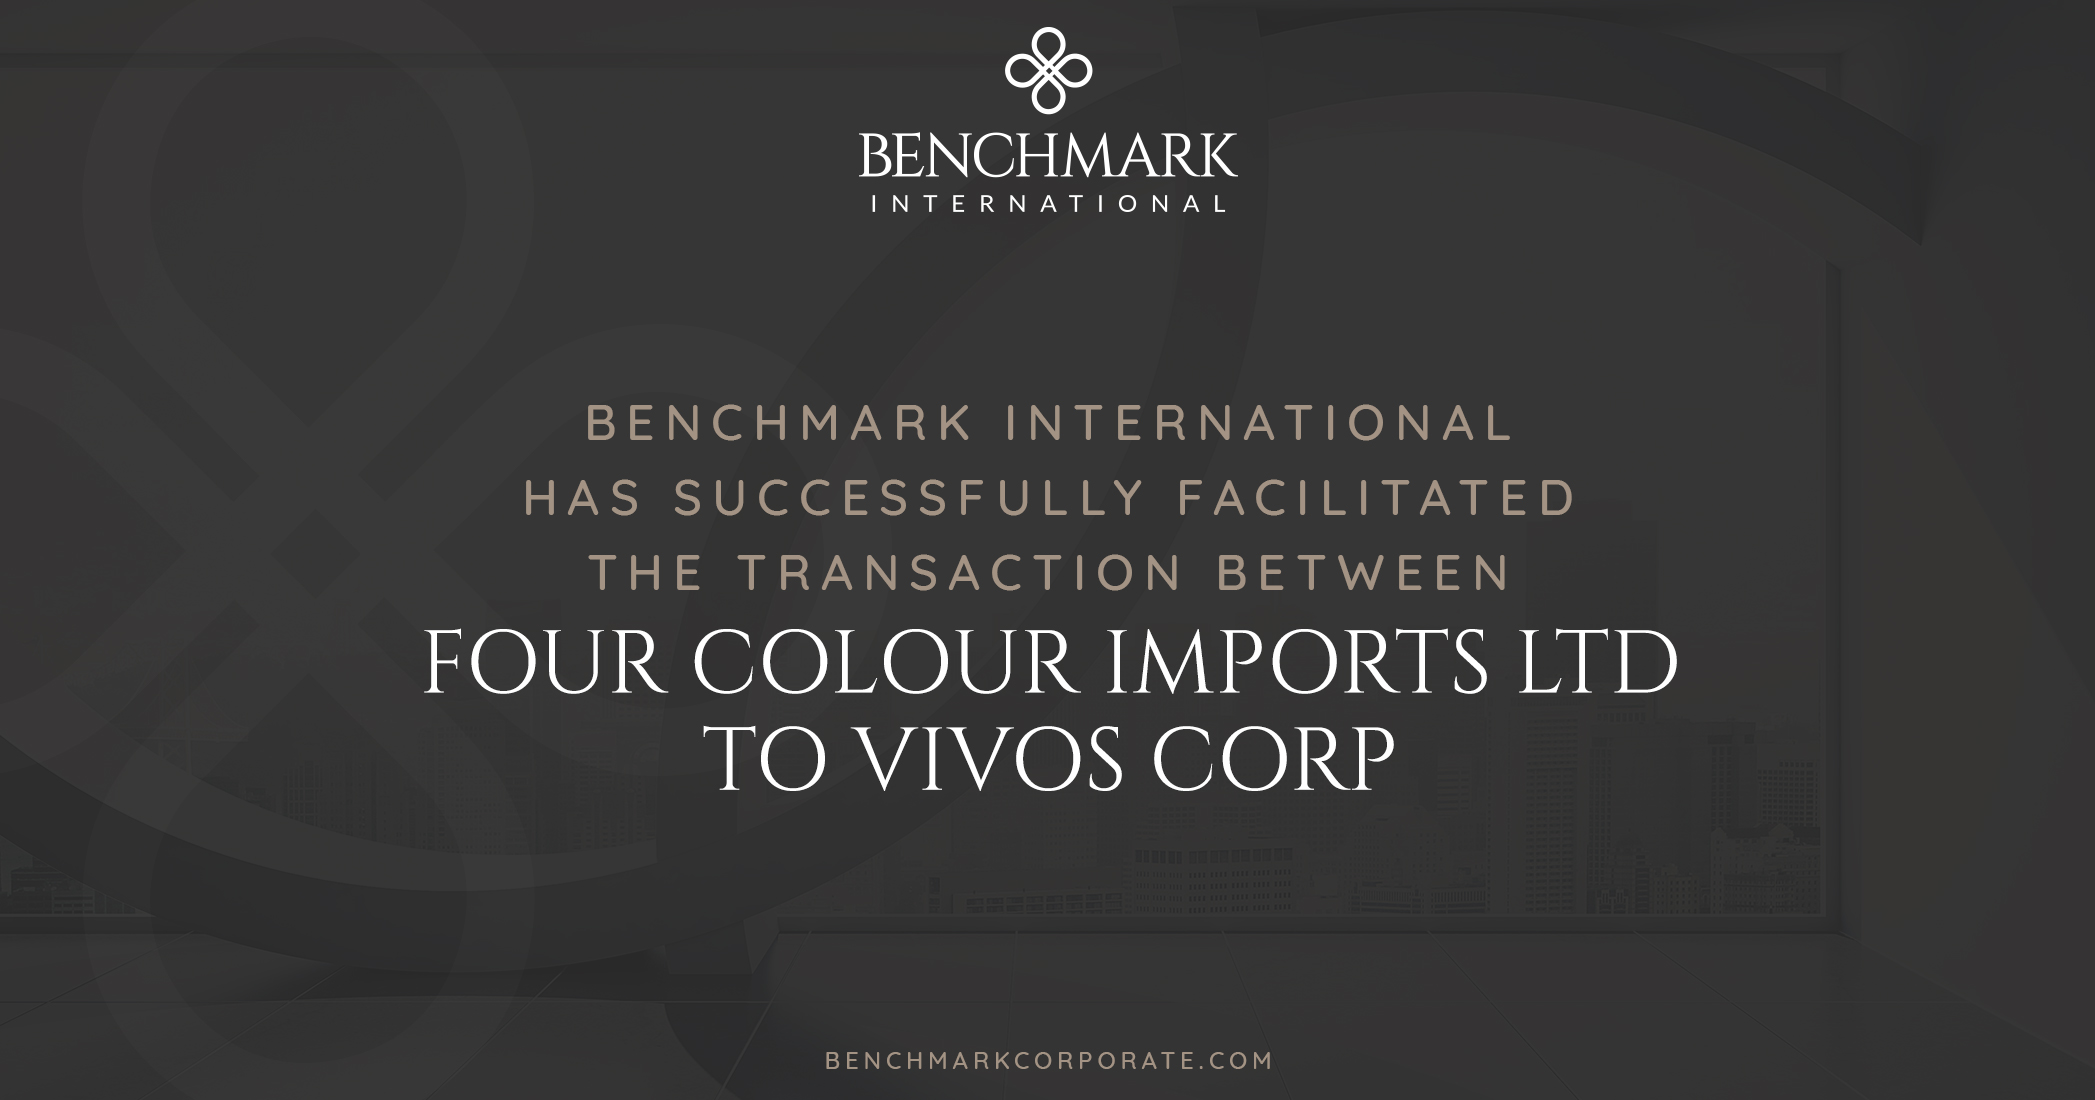 Benchmark International Facilitated the Transaction of Four Colour Imports, LTD to Vivos Corp